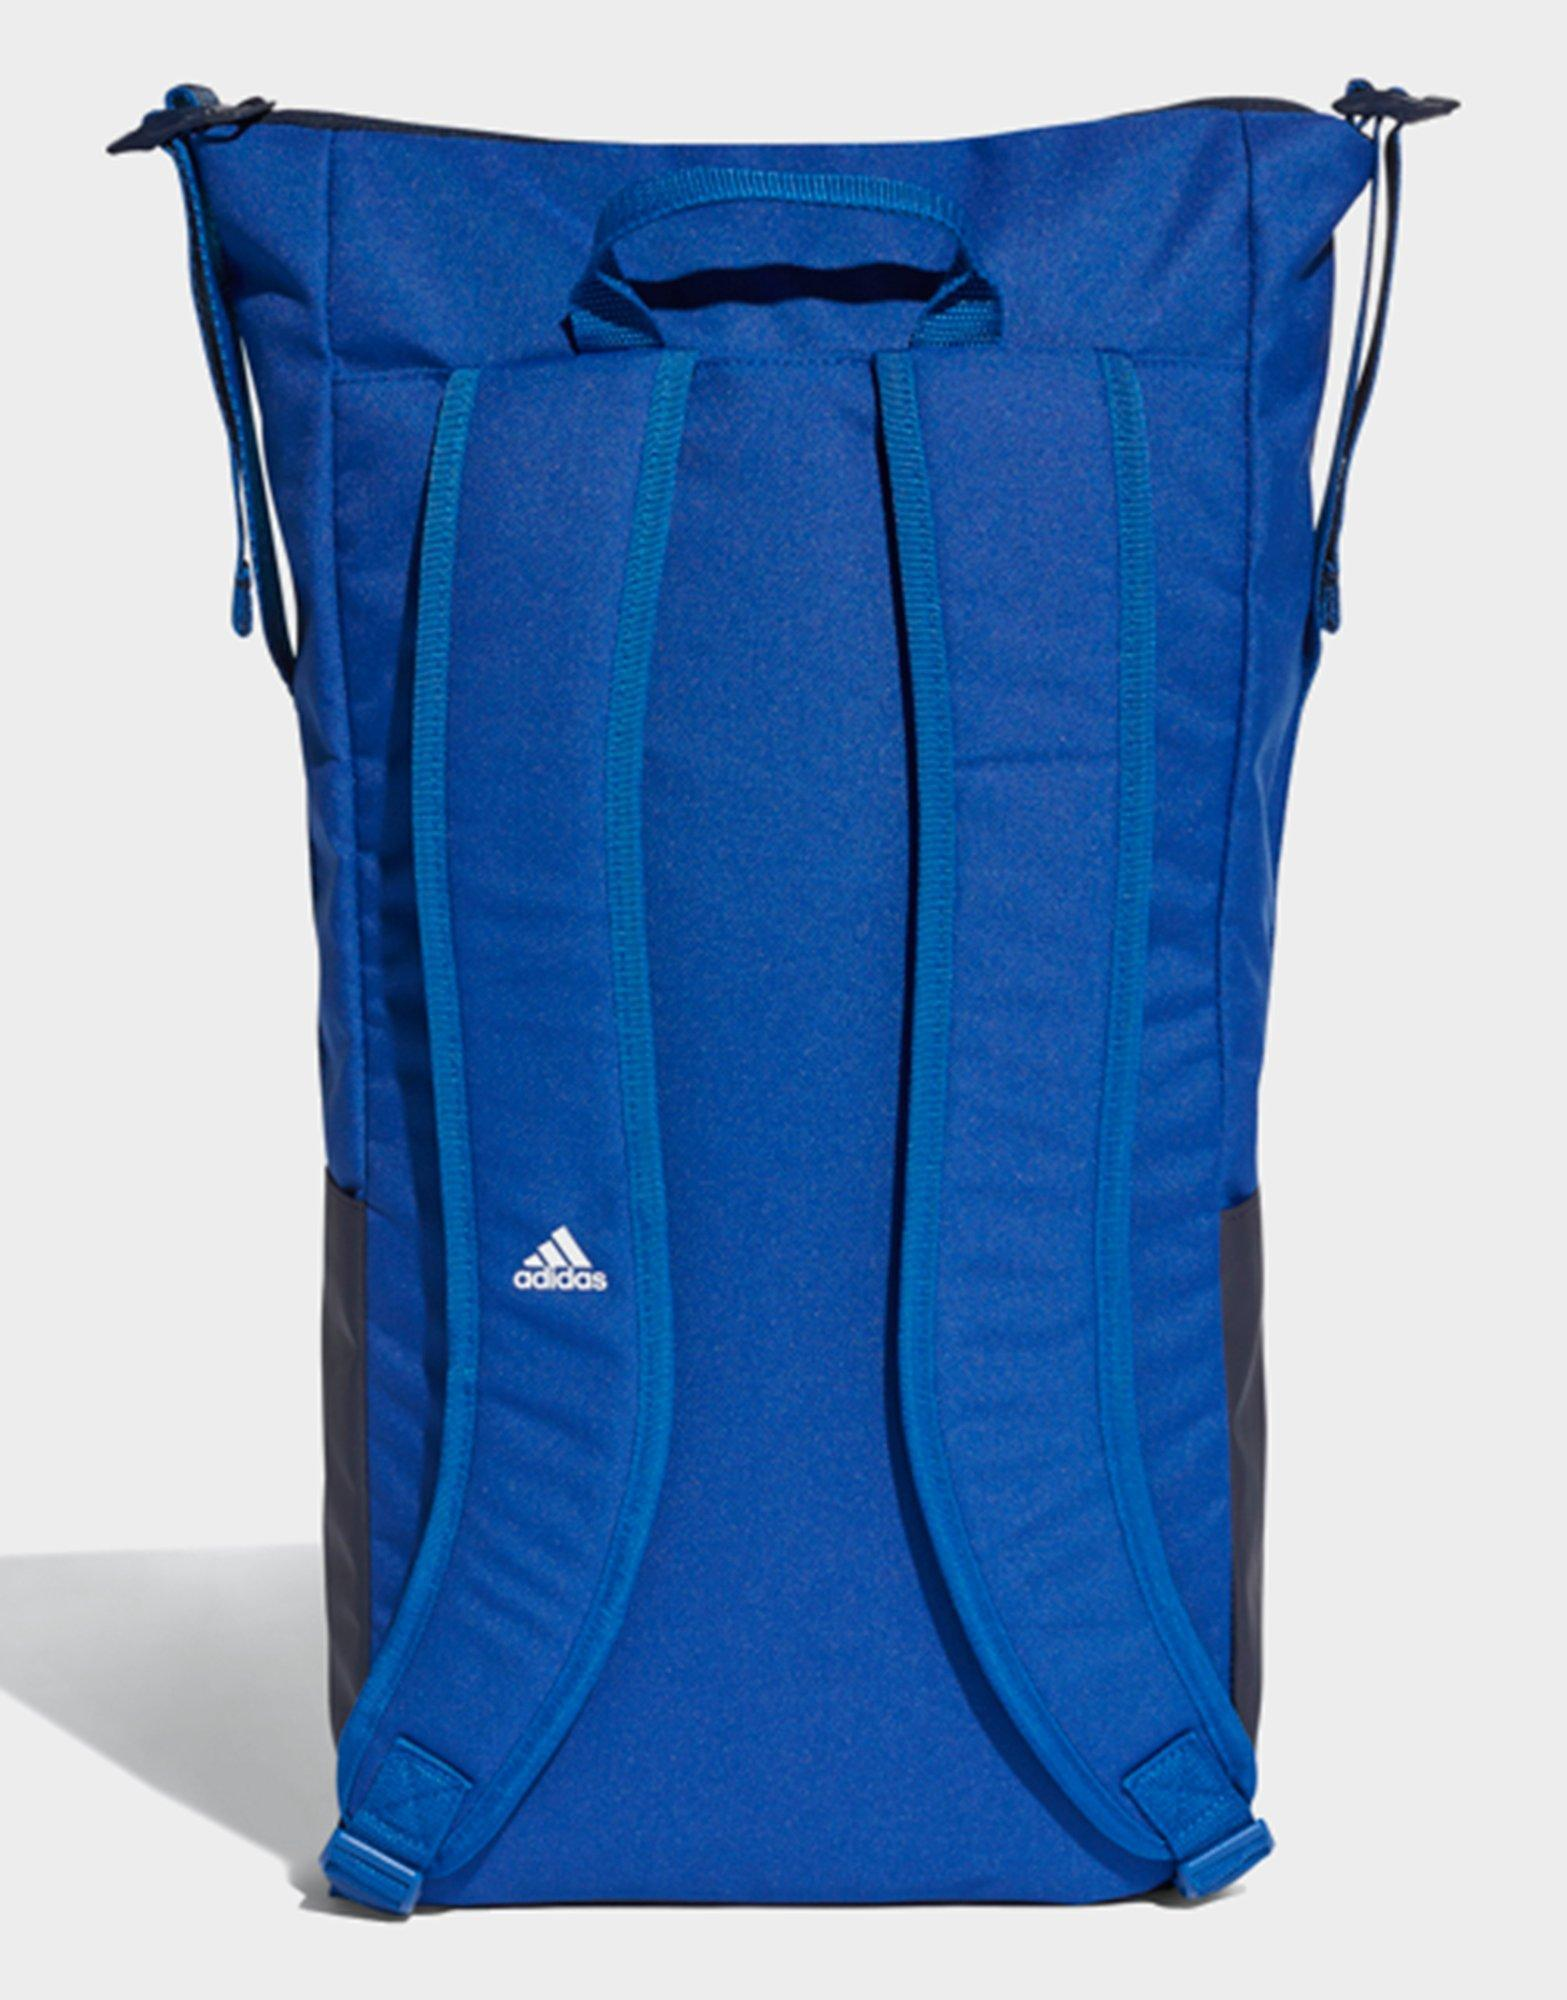 adidas Z.n.e. Core Backpack in Blue for Men - Lyst 9344c658a2e51